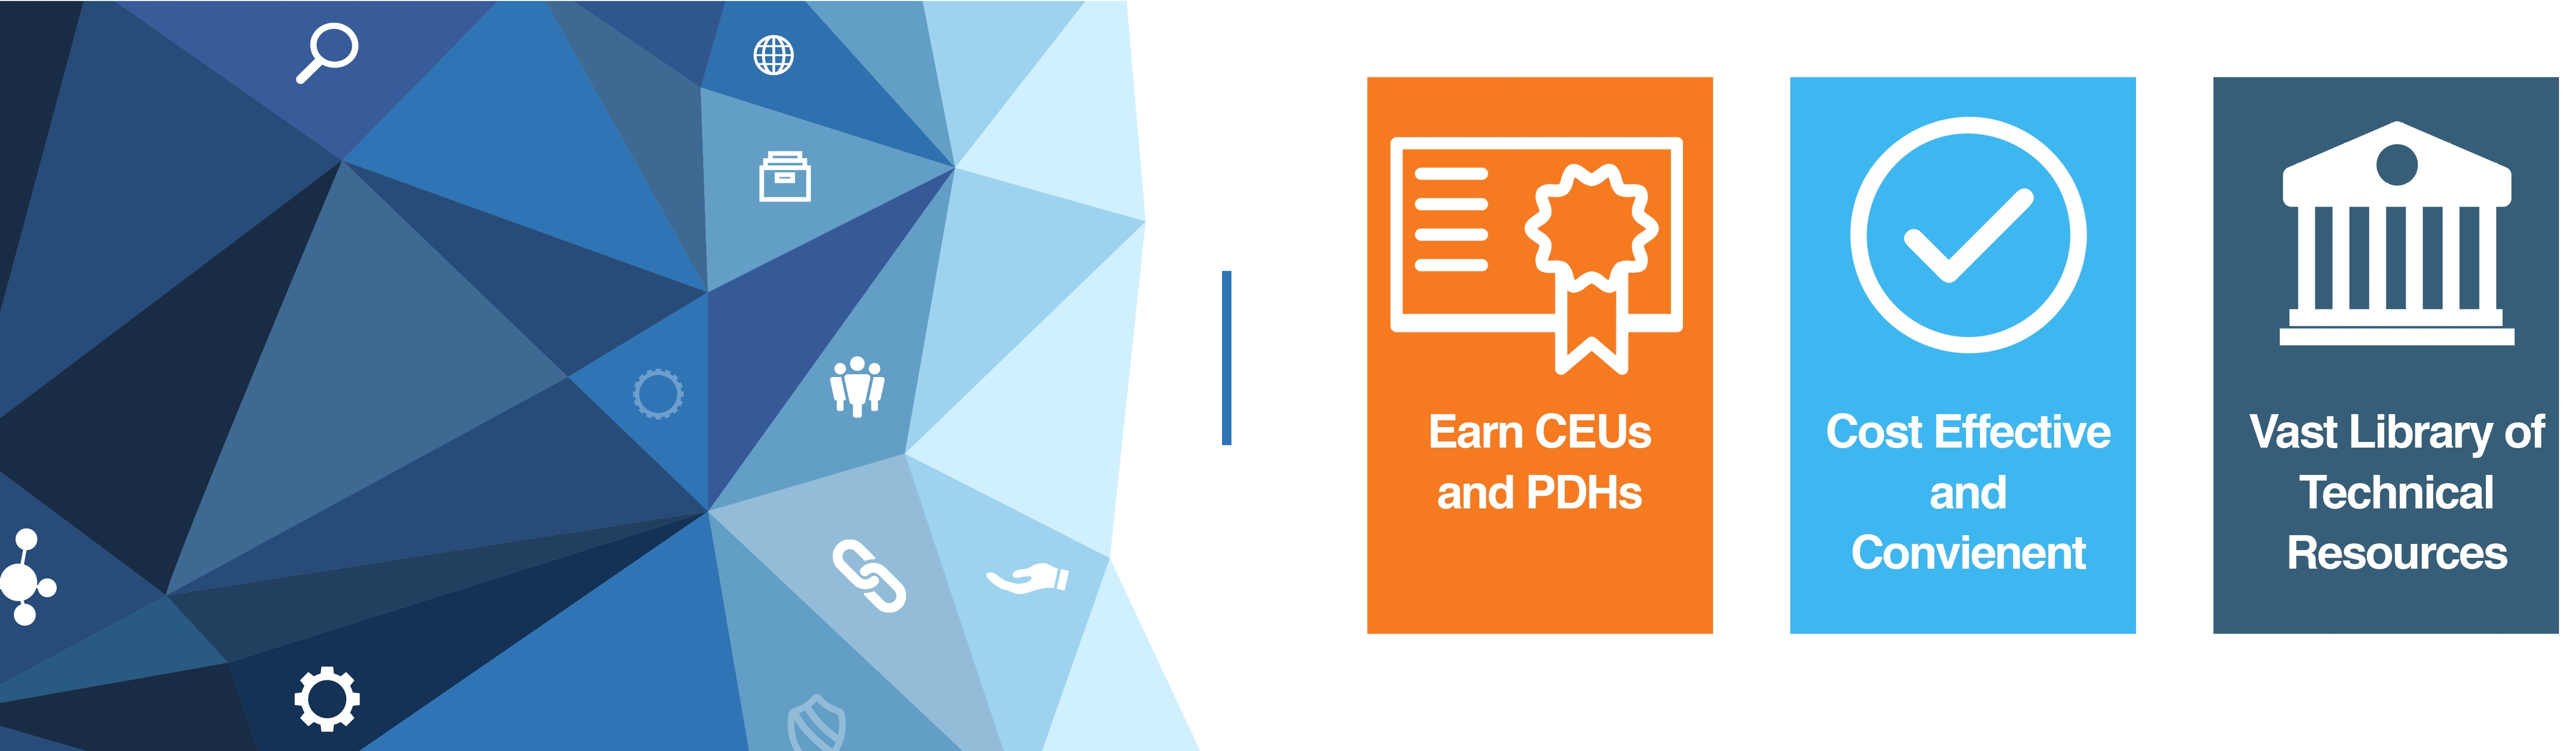 How to Earn Educational Credits